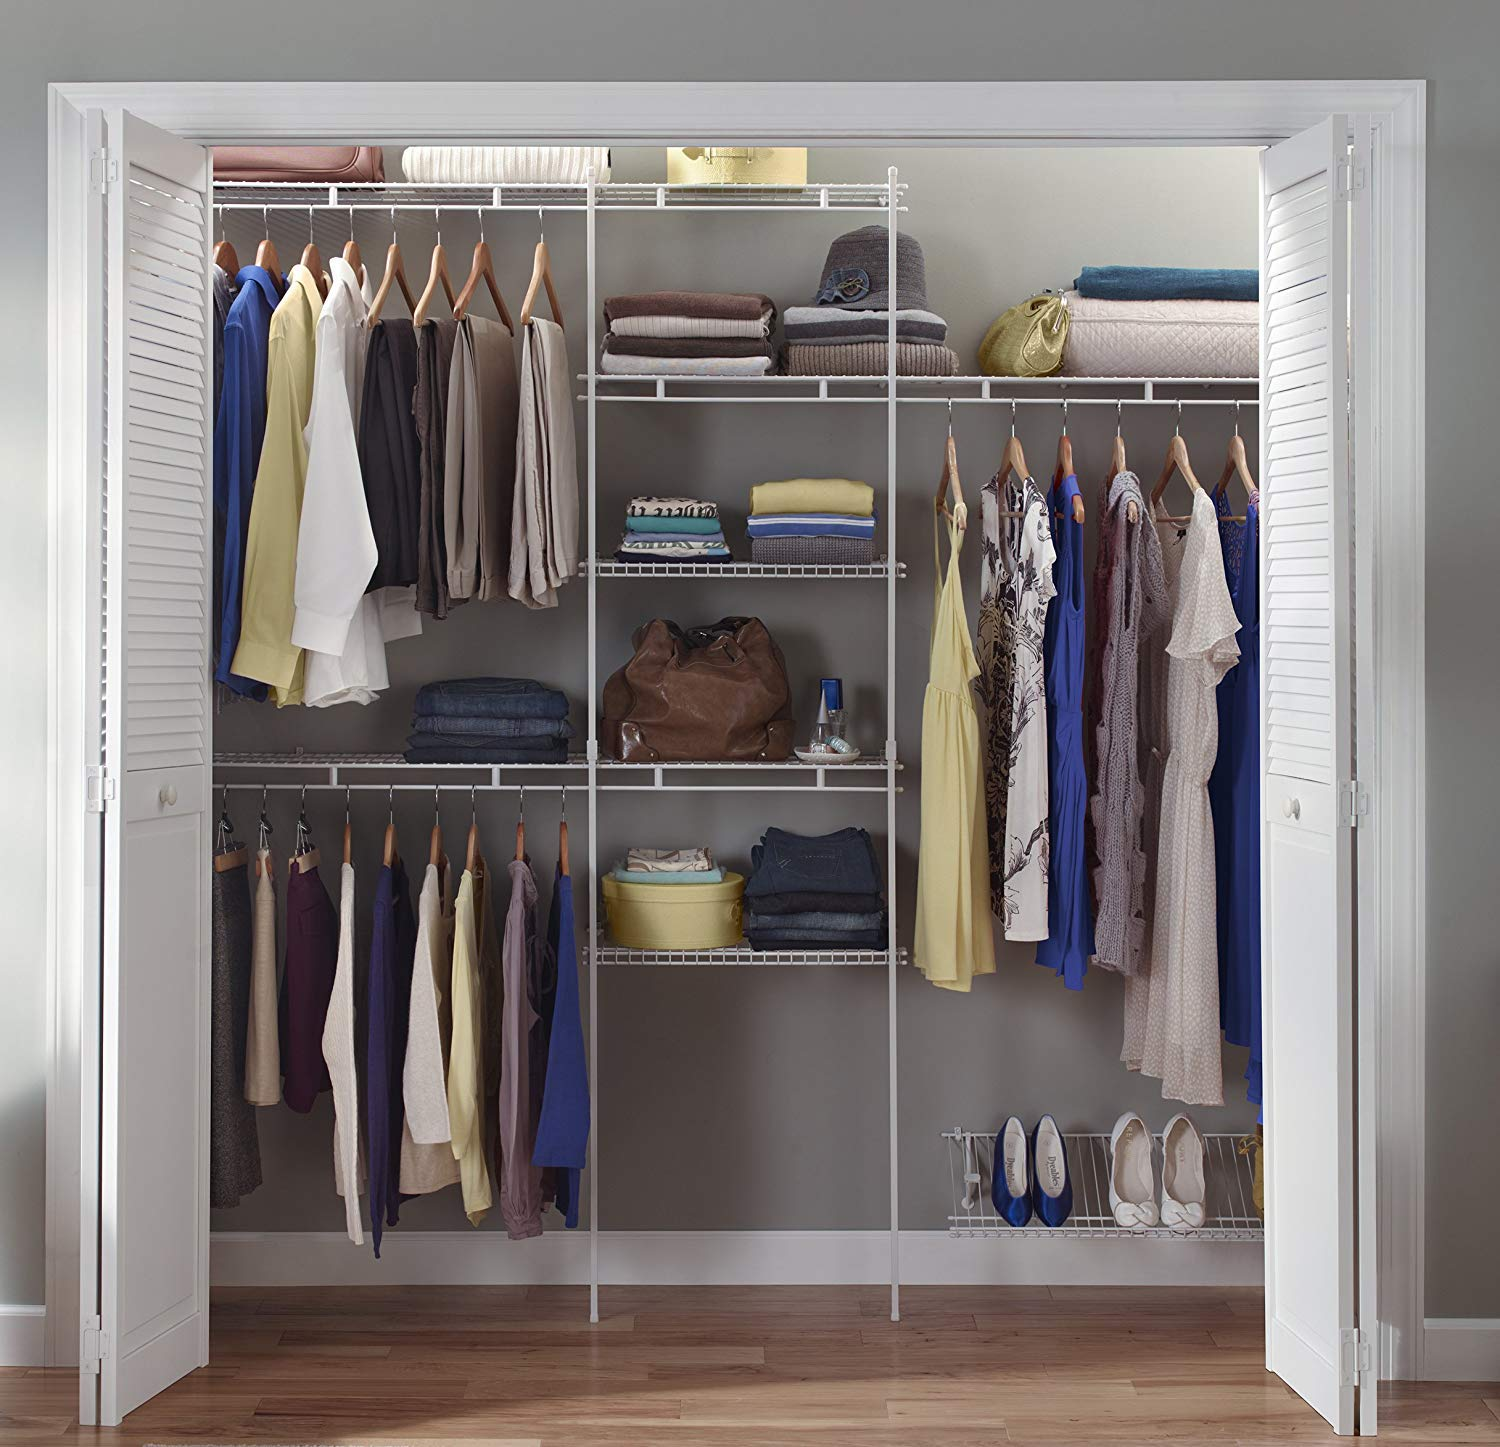 ClosetMaid 1608 Closet Organizer Kit with Shoe Shelf, 5-Foot to 8-Foot,  White